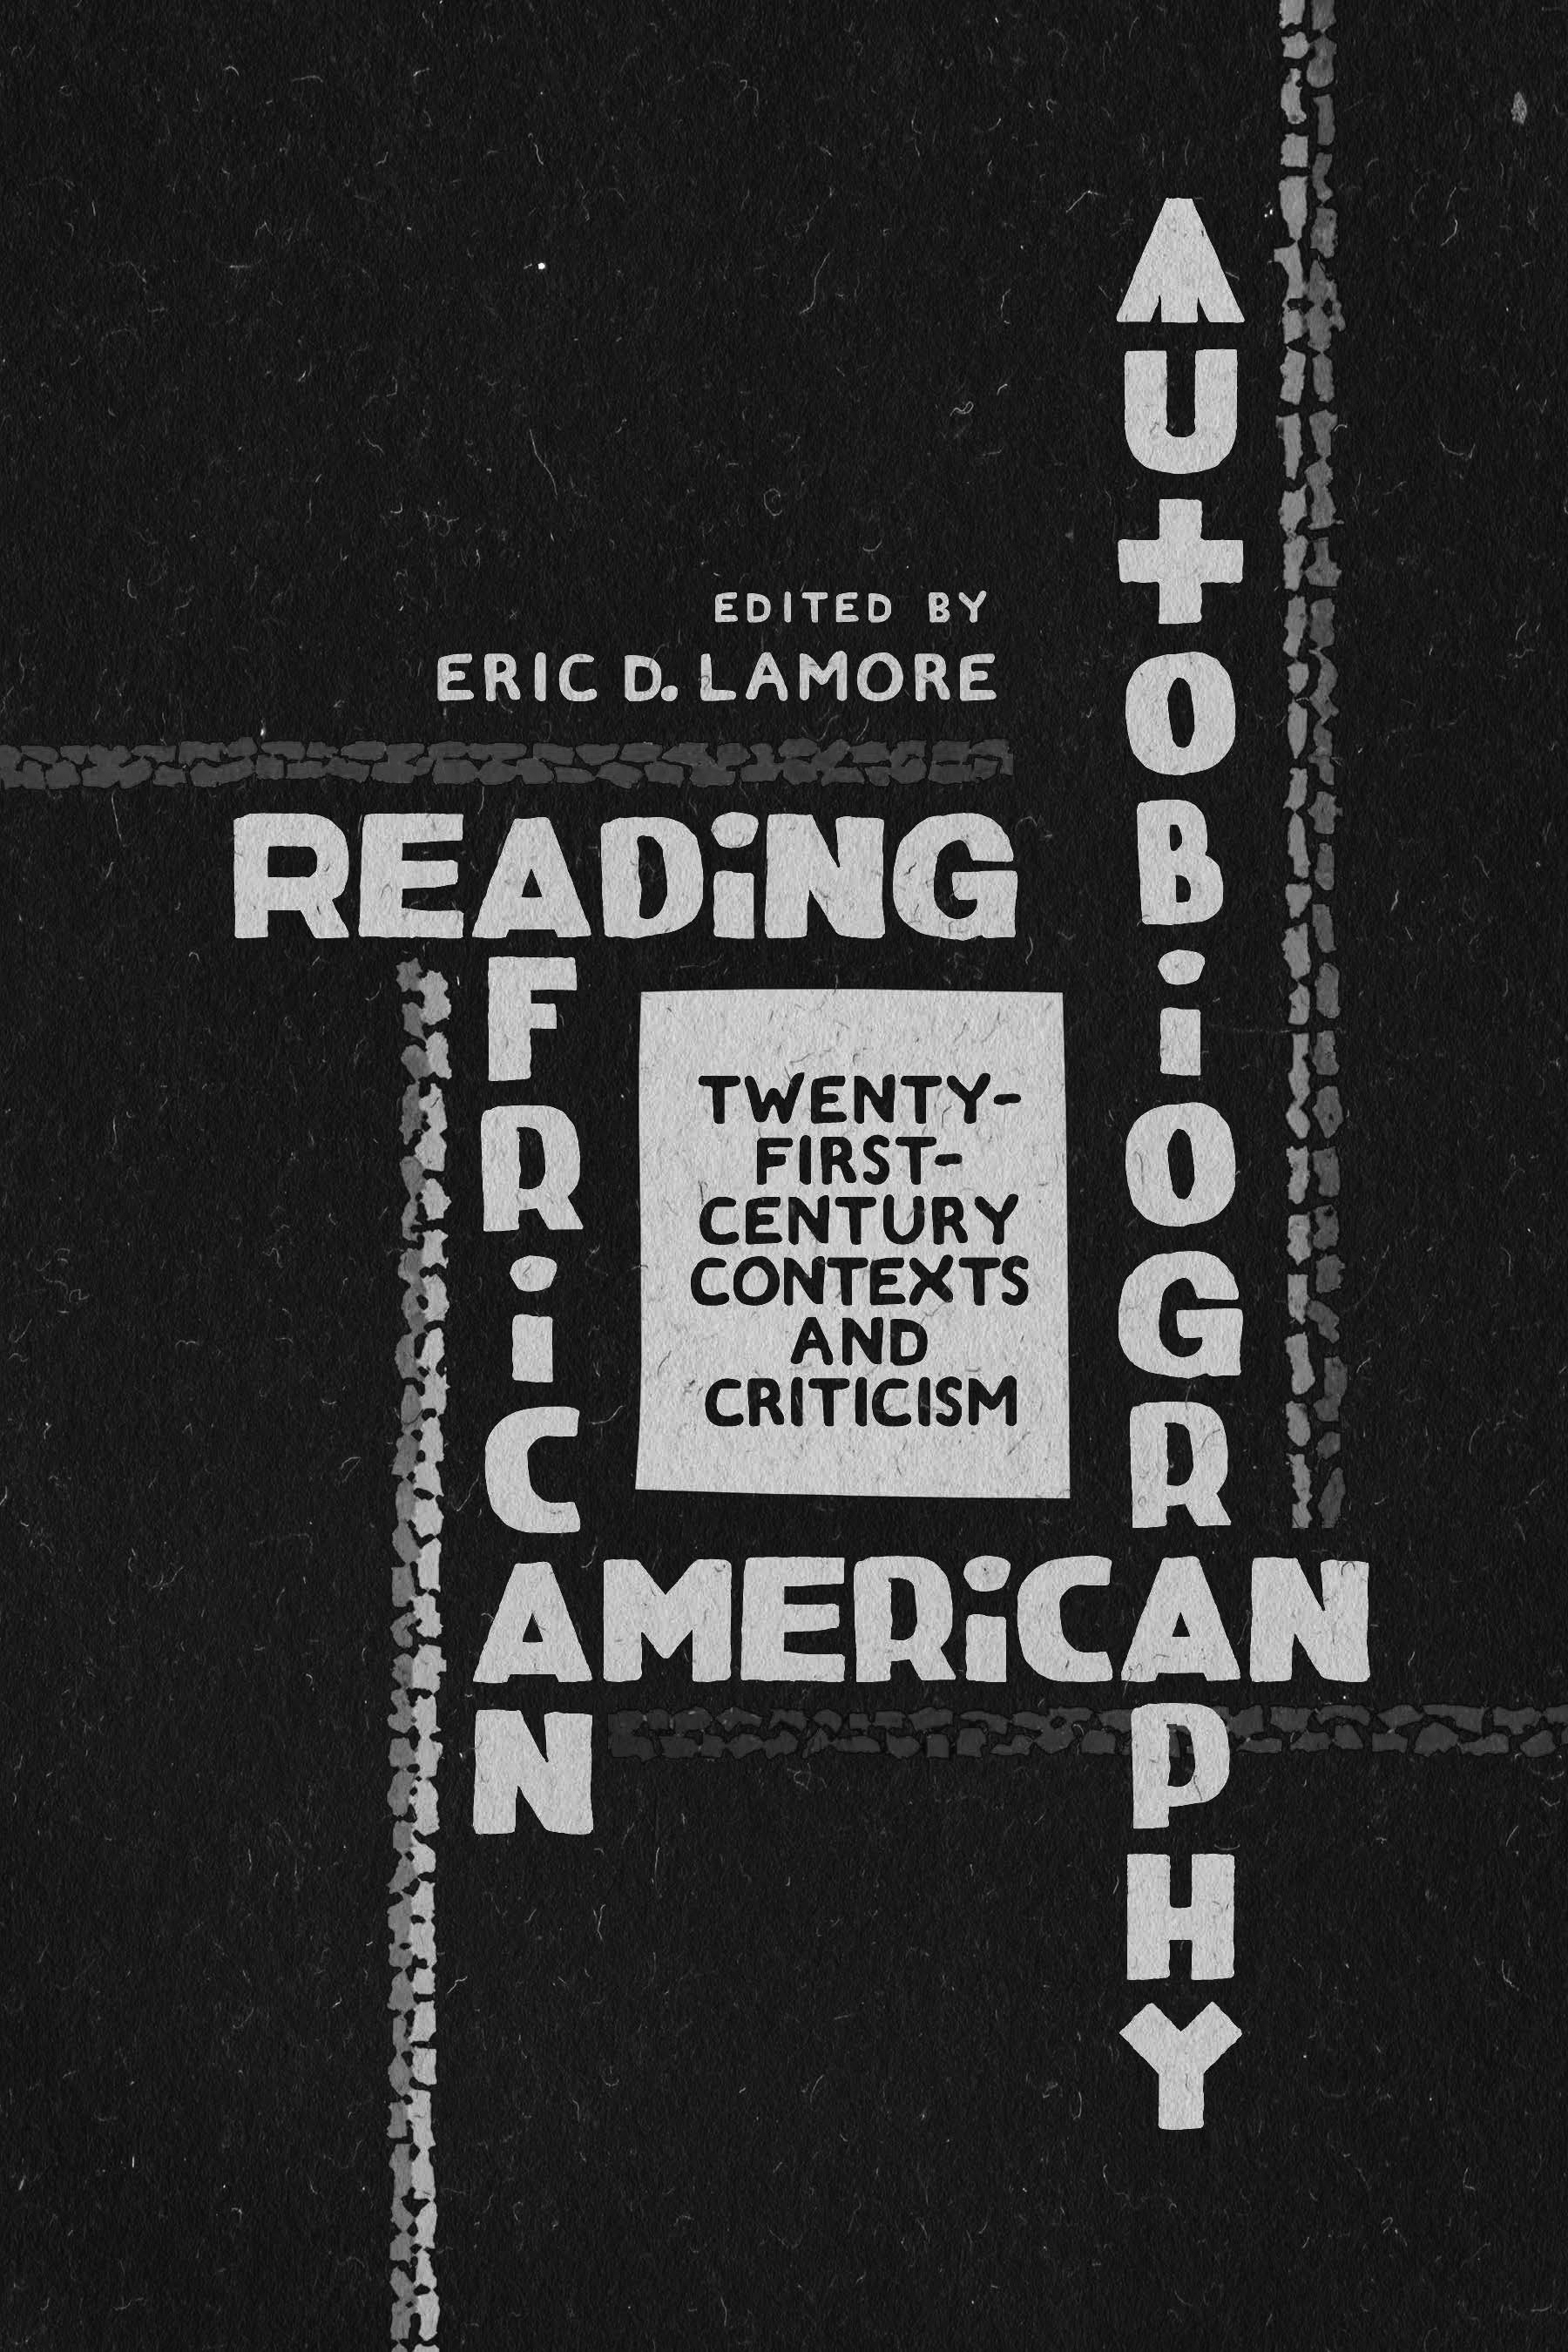 The Collected Essays